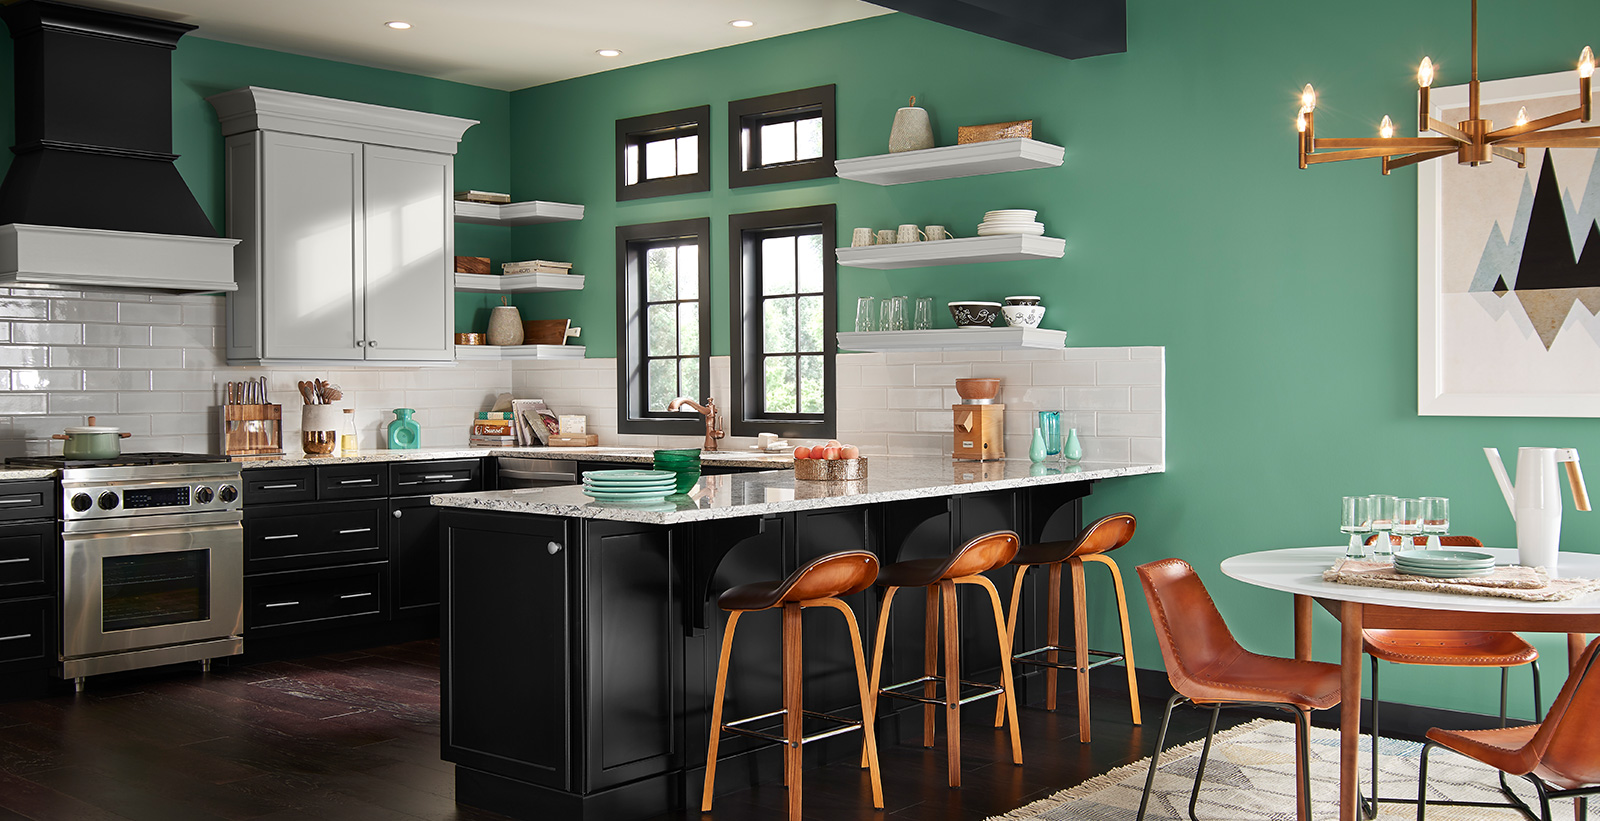 Green Kitchen Ideas and Inspirational Paint Colors | Behr